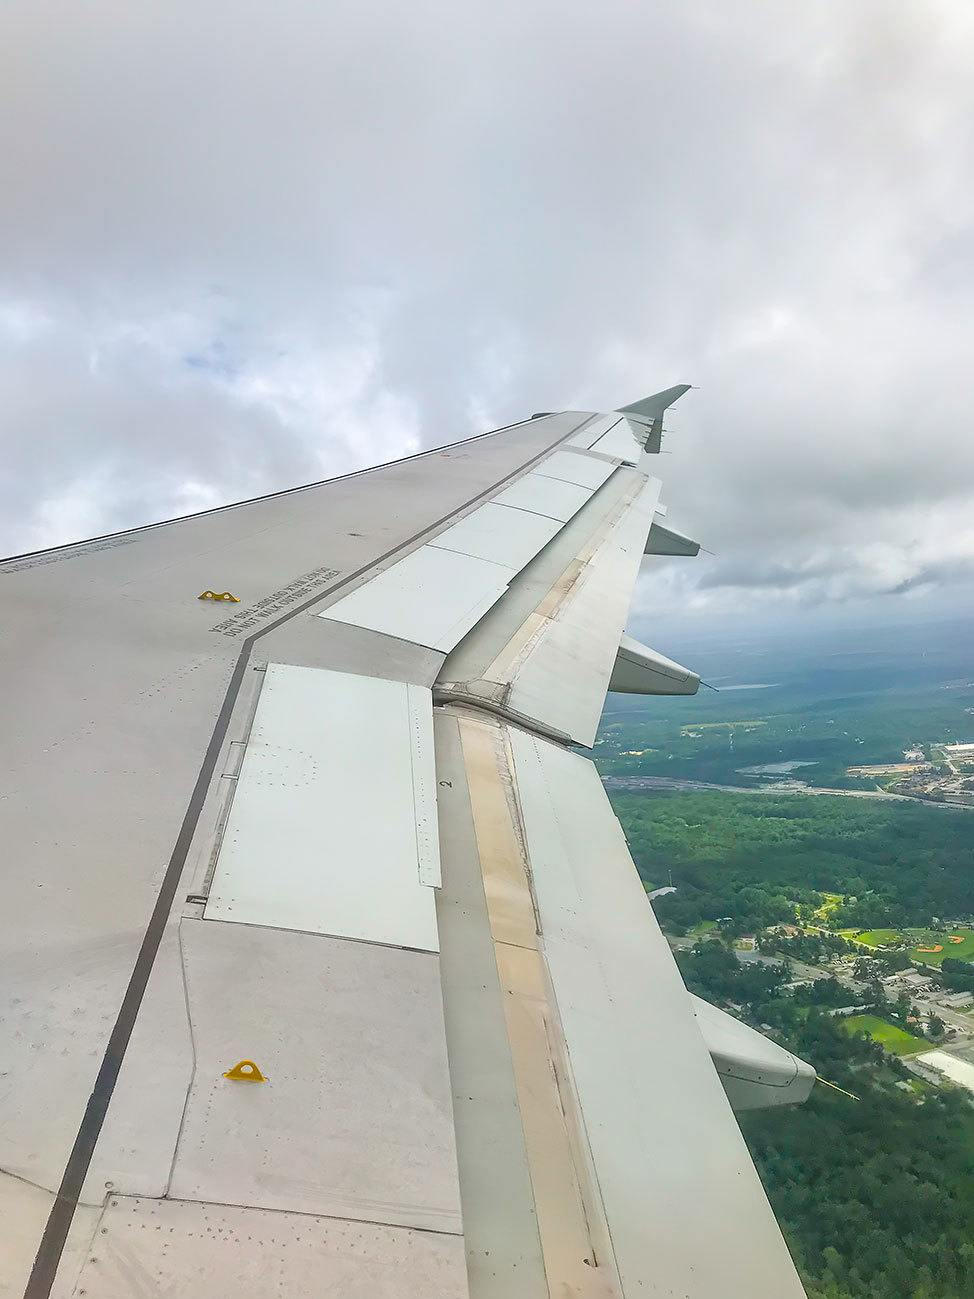 Flying out of ALB